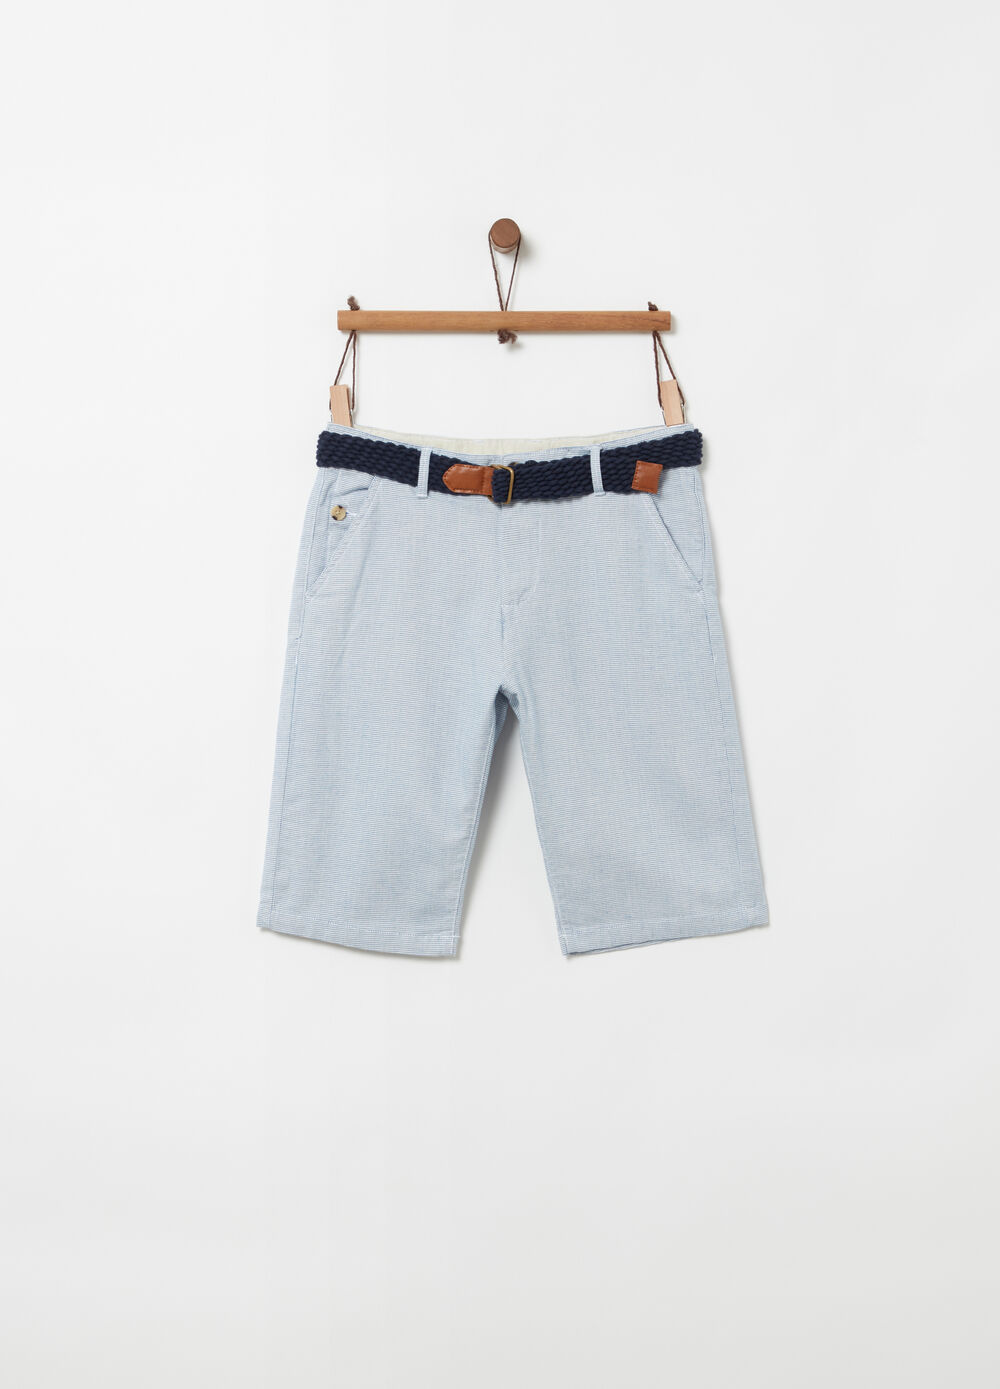 Textured cotton Bermuda chinos with belt